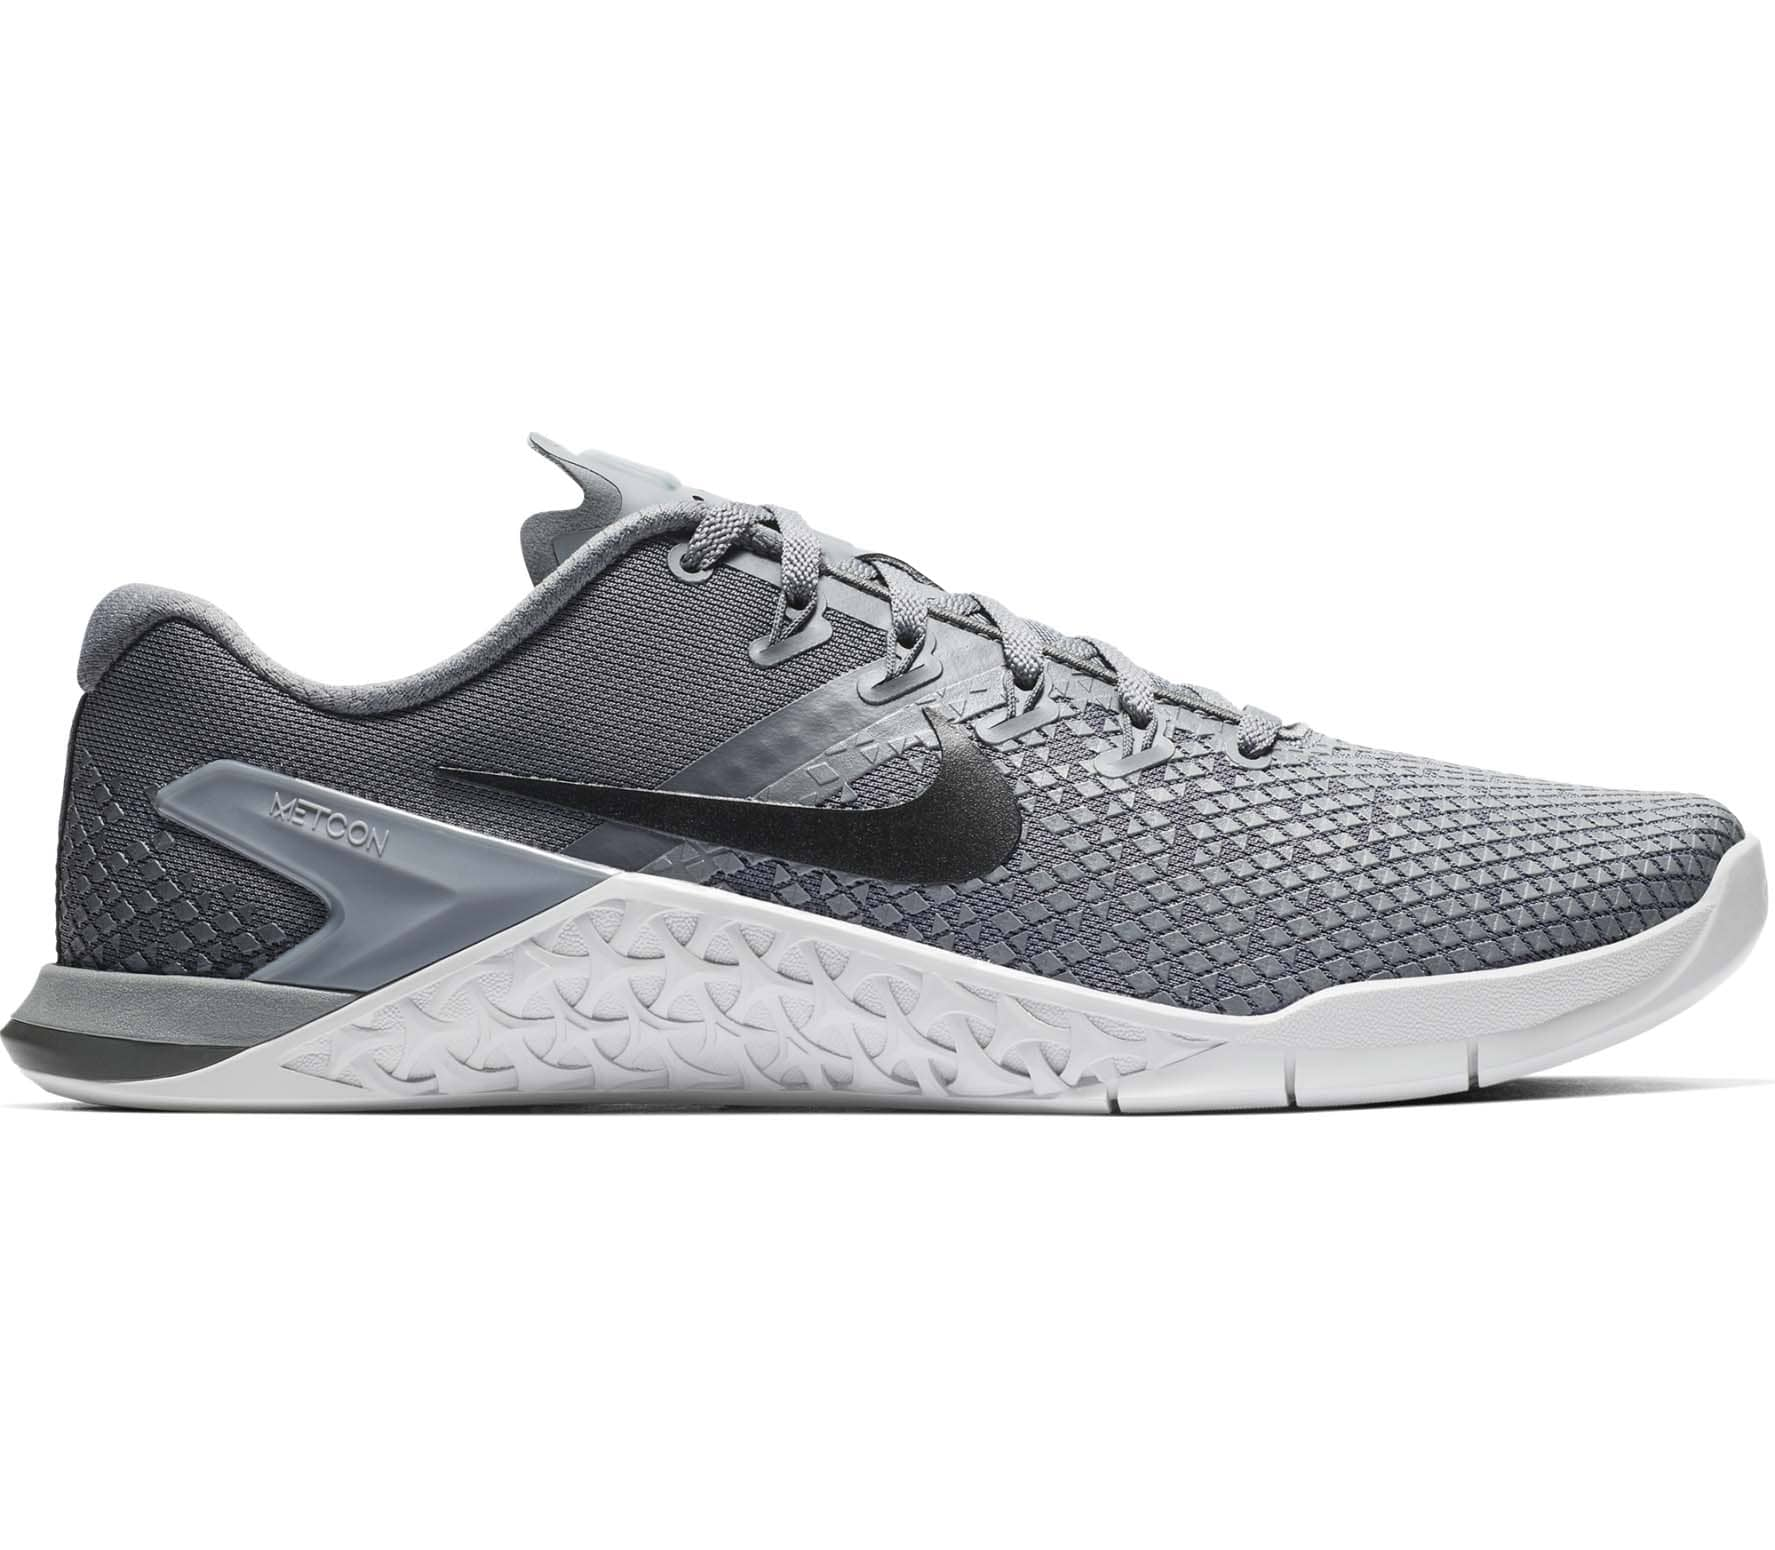 sports shoes ddaa2 20c54 Nike - Metcon 4 XD mens training shoes (grey)